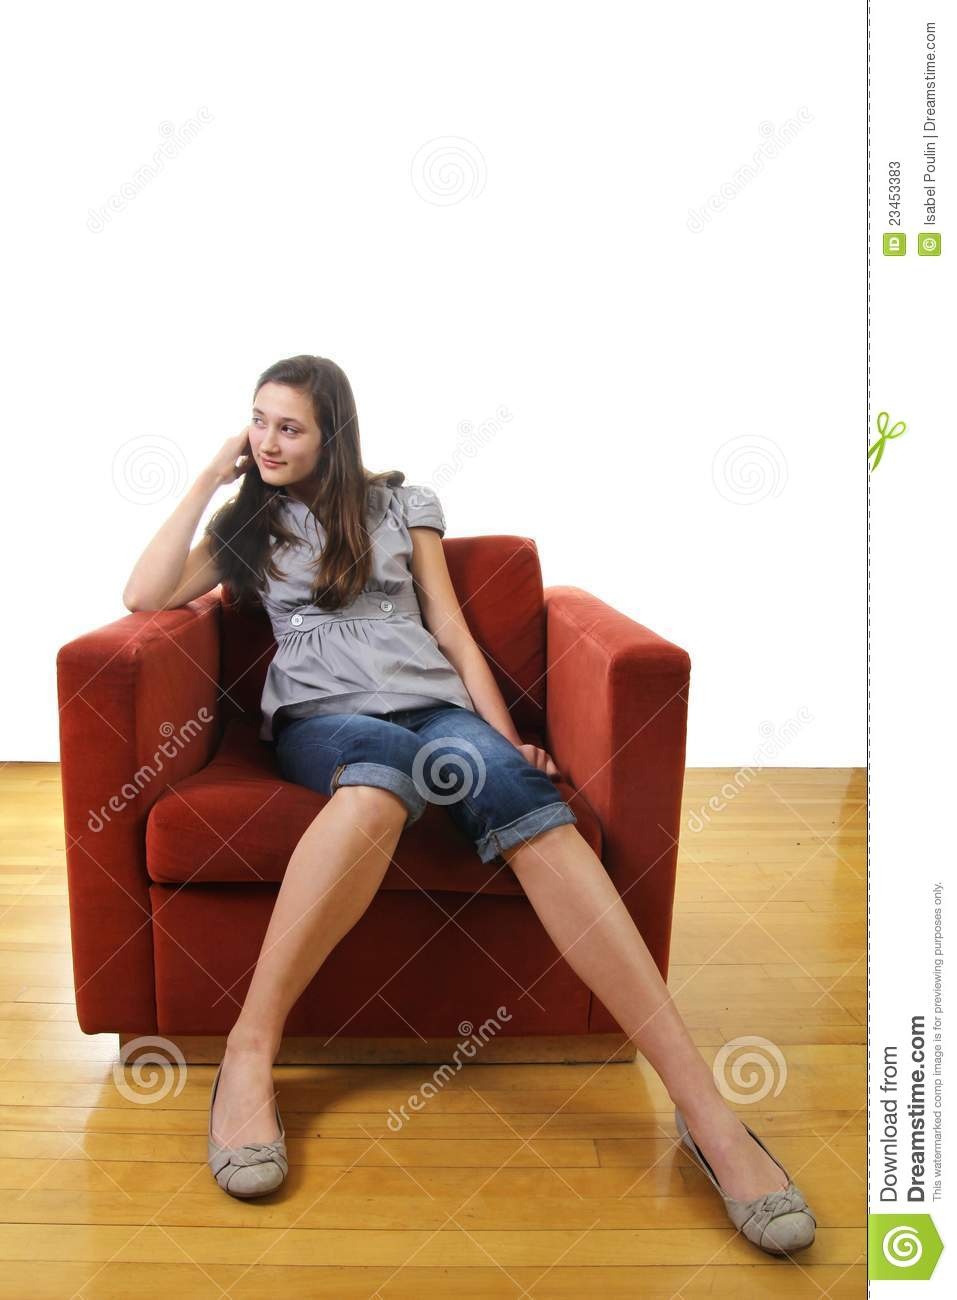 Sofa Teen Thumbs 72